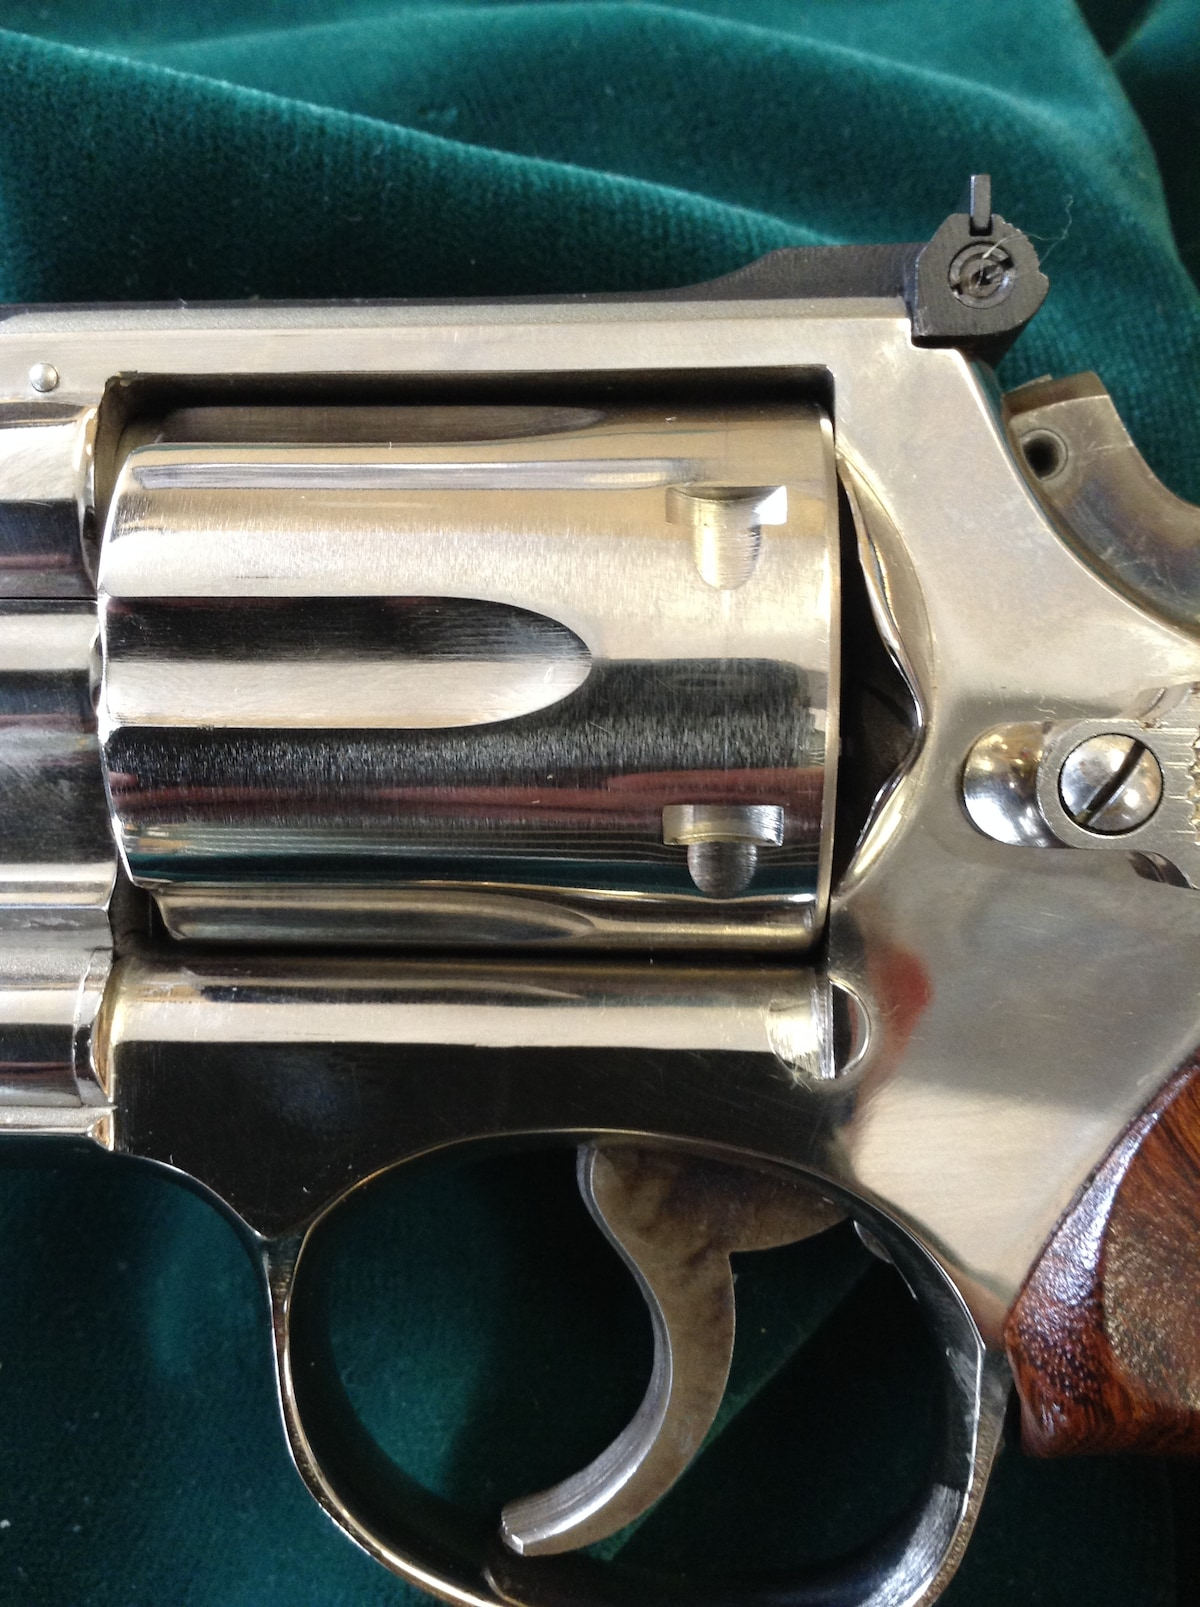 SMITH & WESSON 19-3